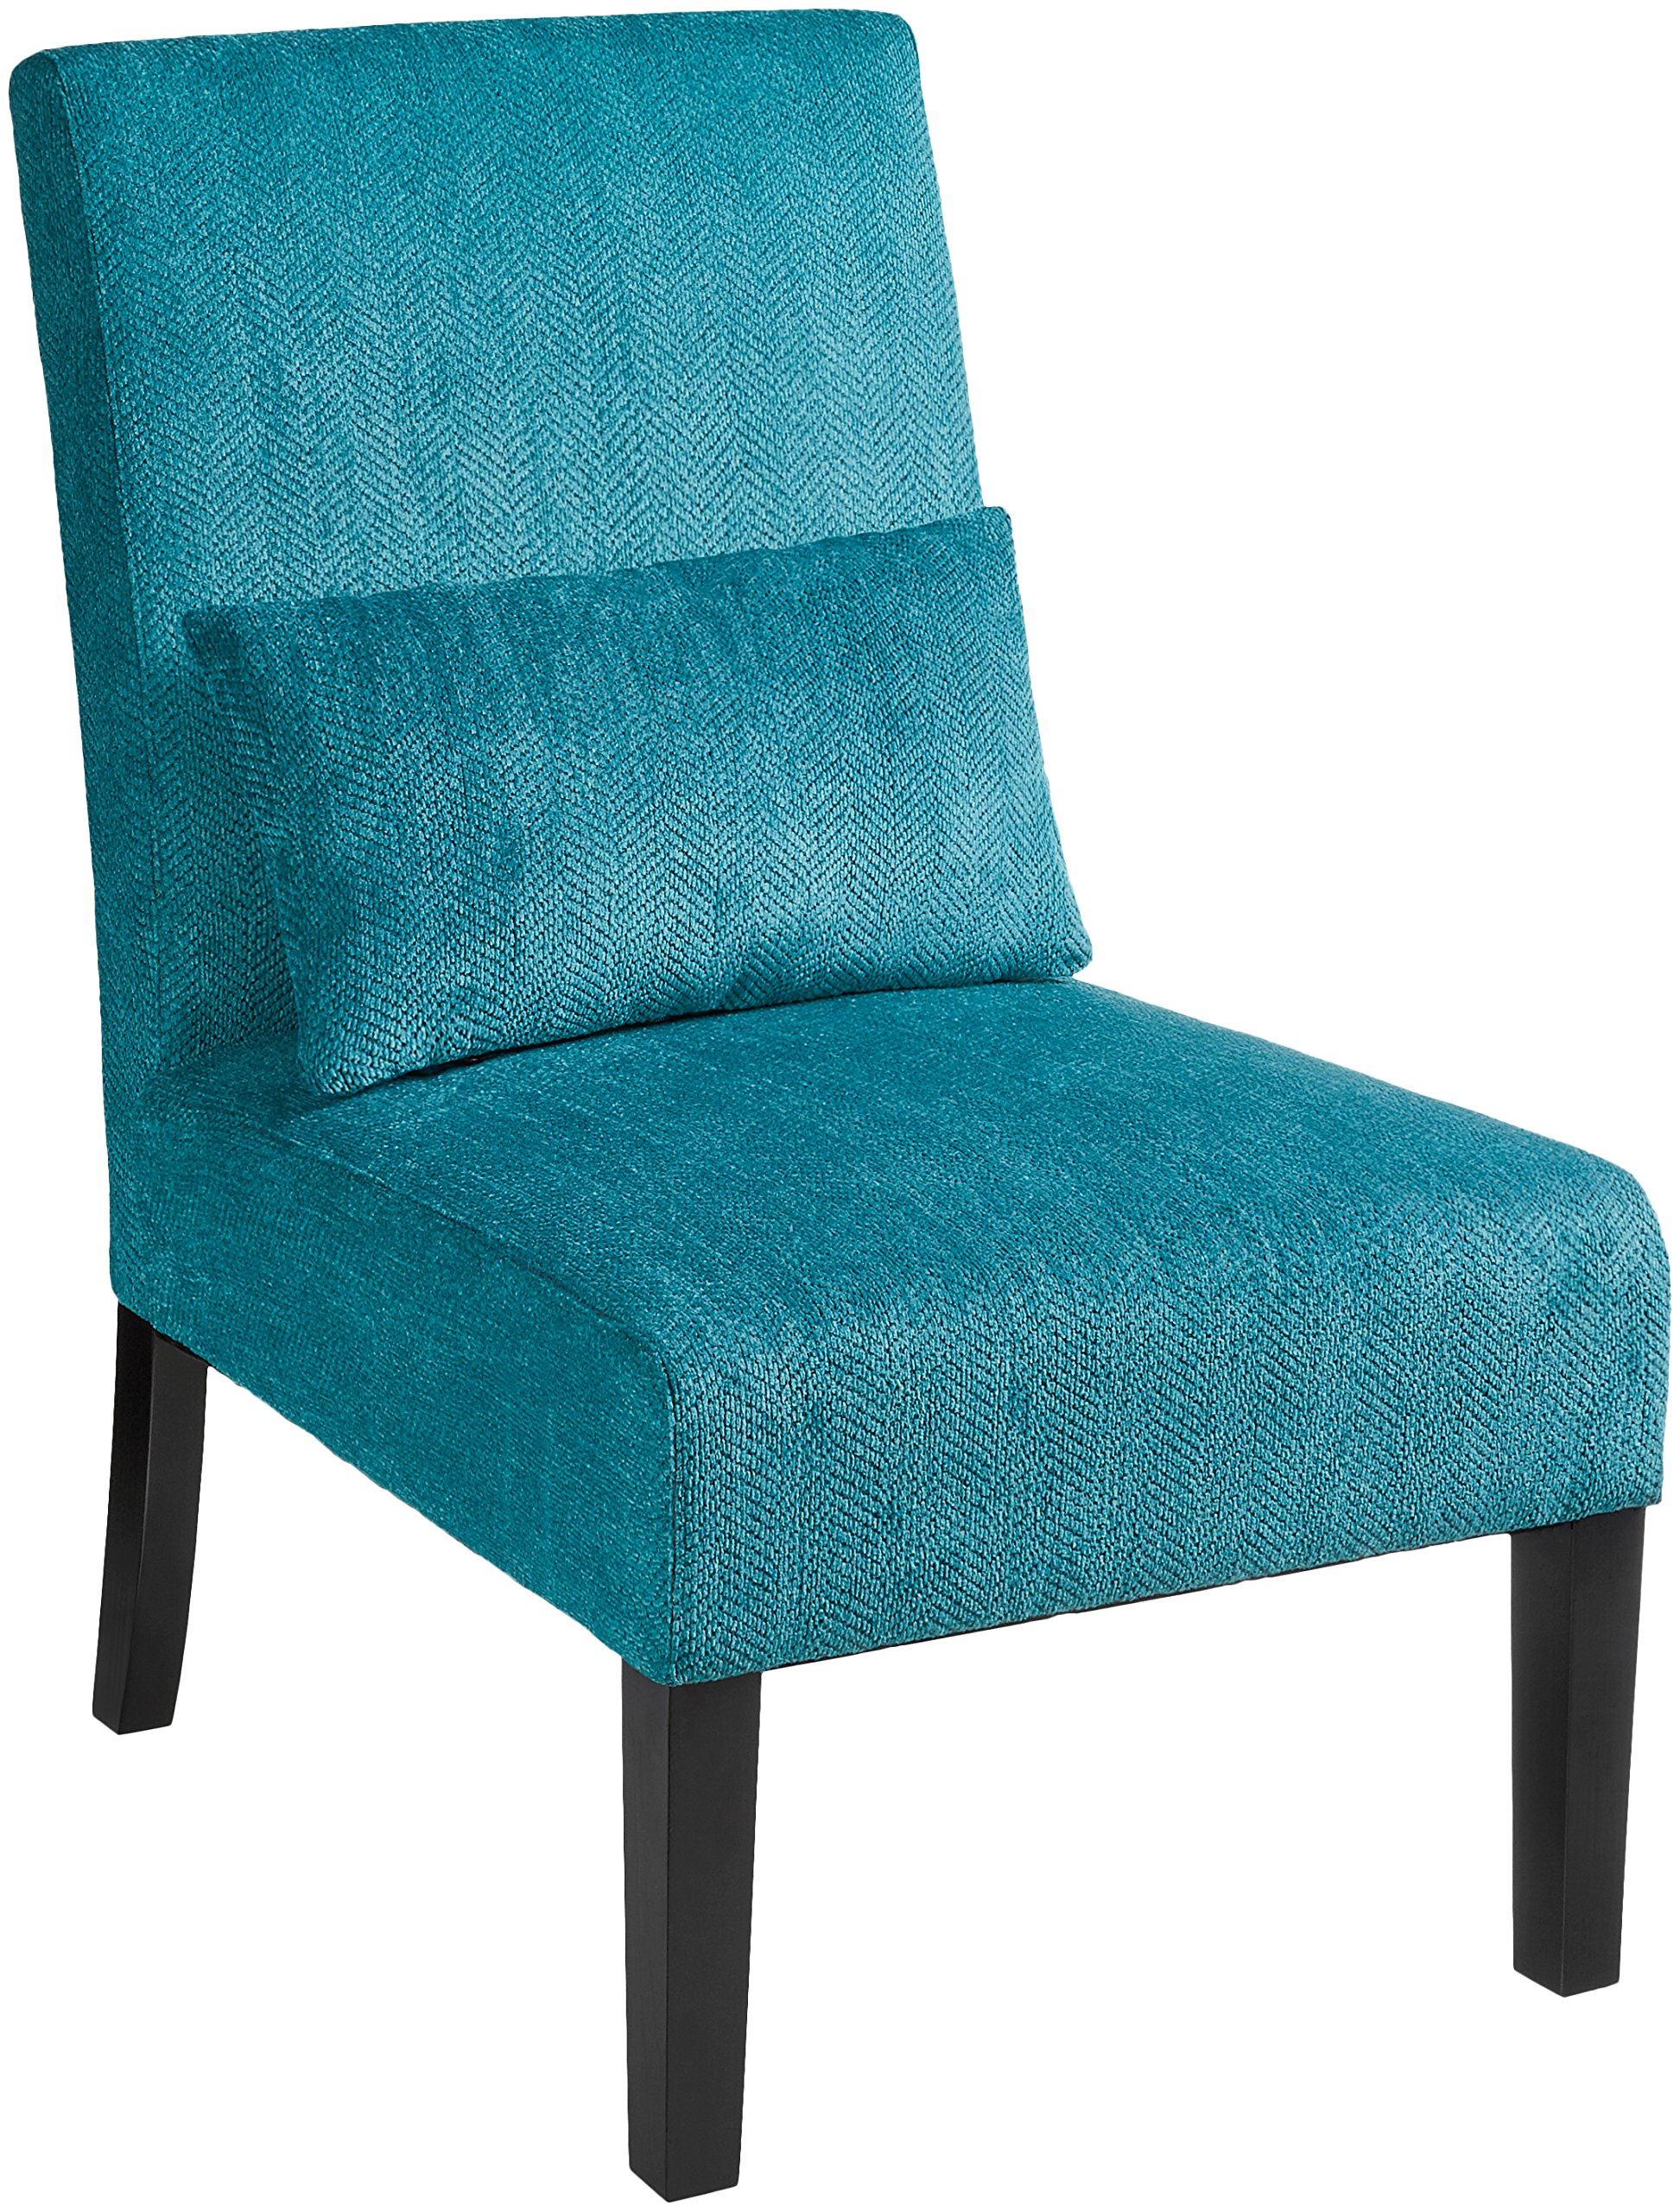 Roundhill Furniture Pisano Teal Blue Fabric Armless Contemporary Accent Chair with Kidney Pillow, Single by Roundhill Furniture